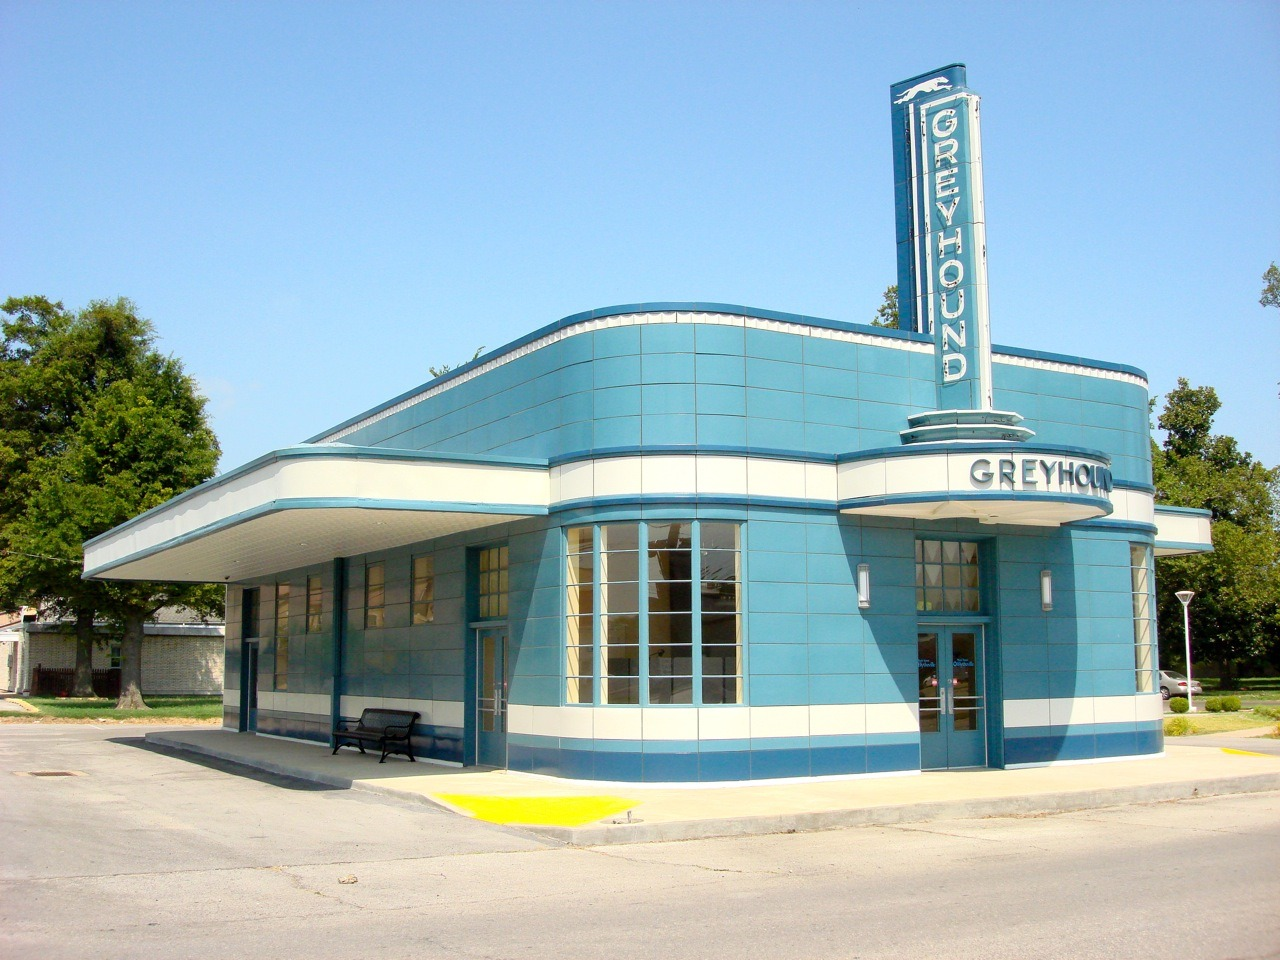 Greyhound bus station in jackson  tennessee  built in 1938